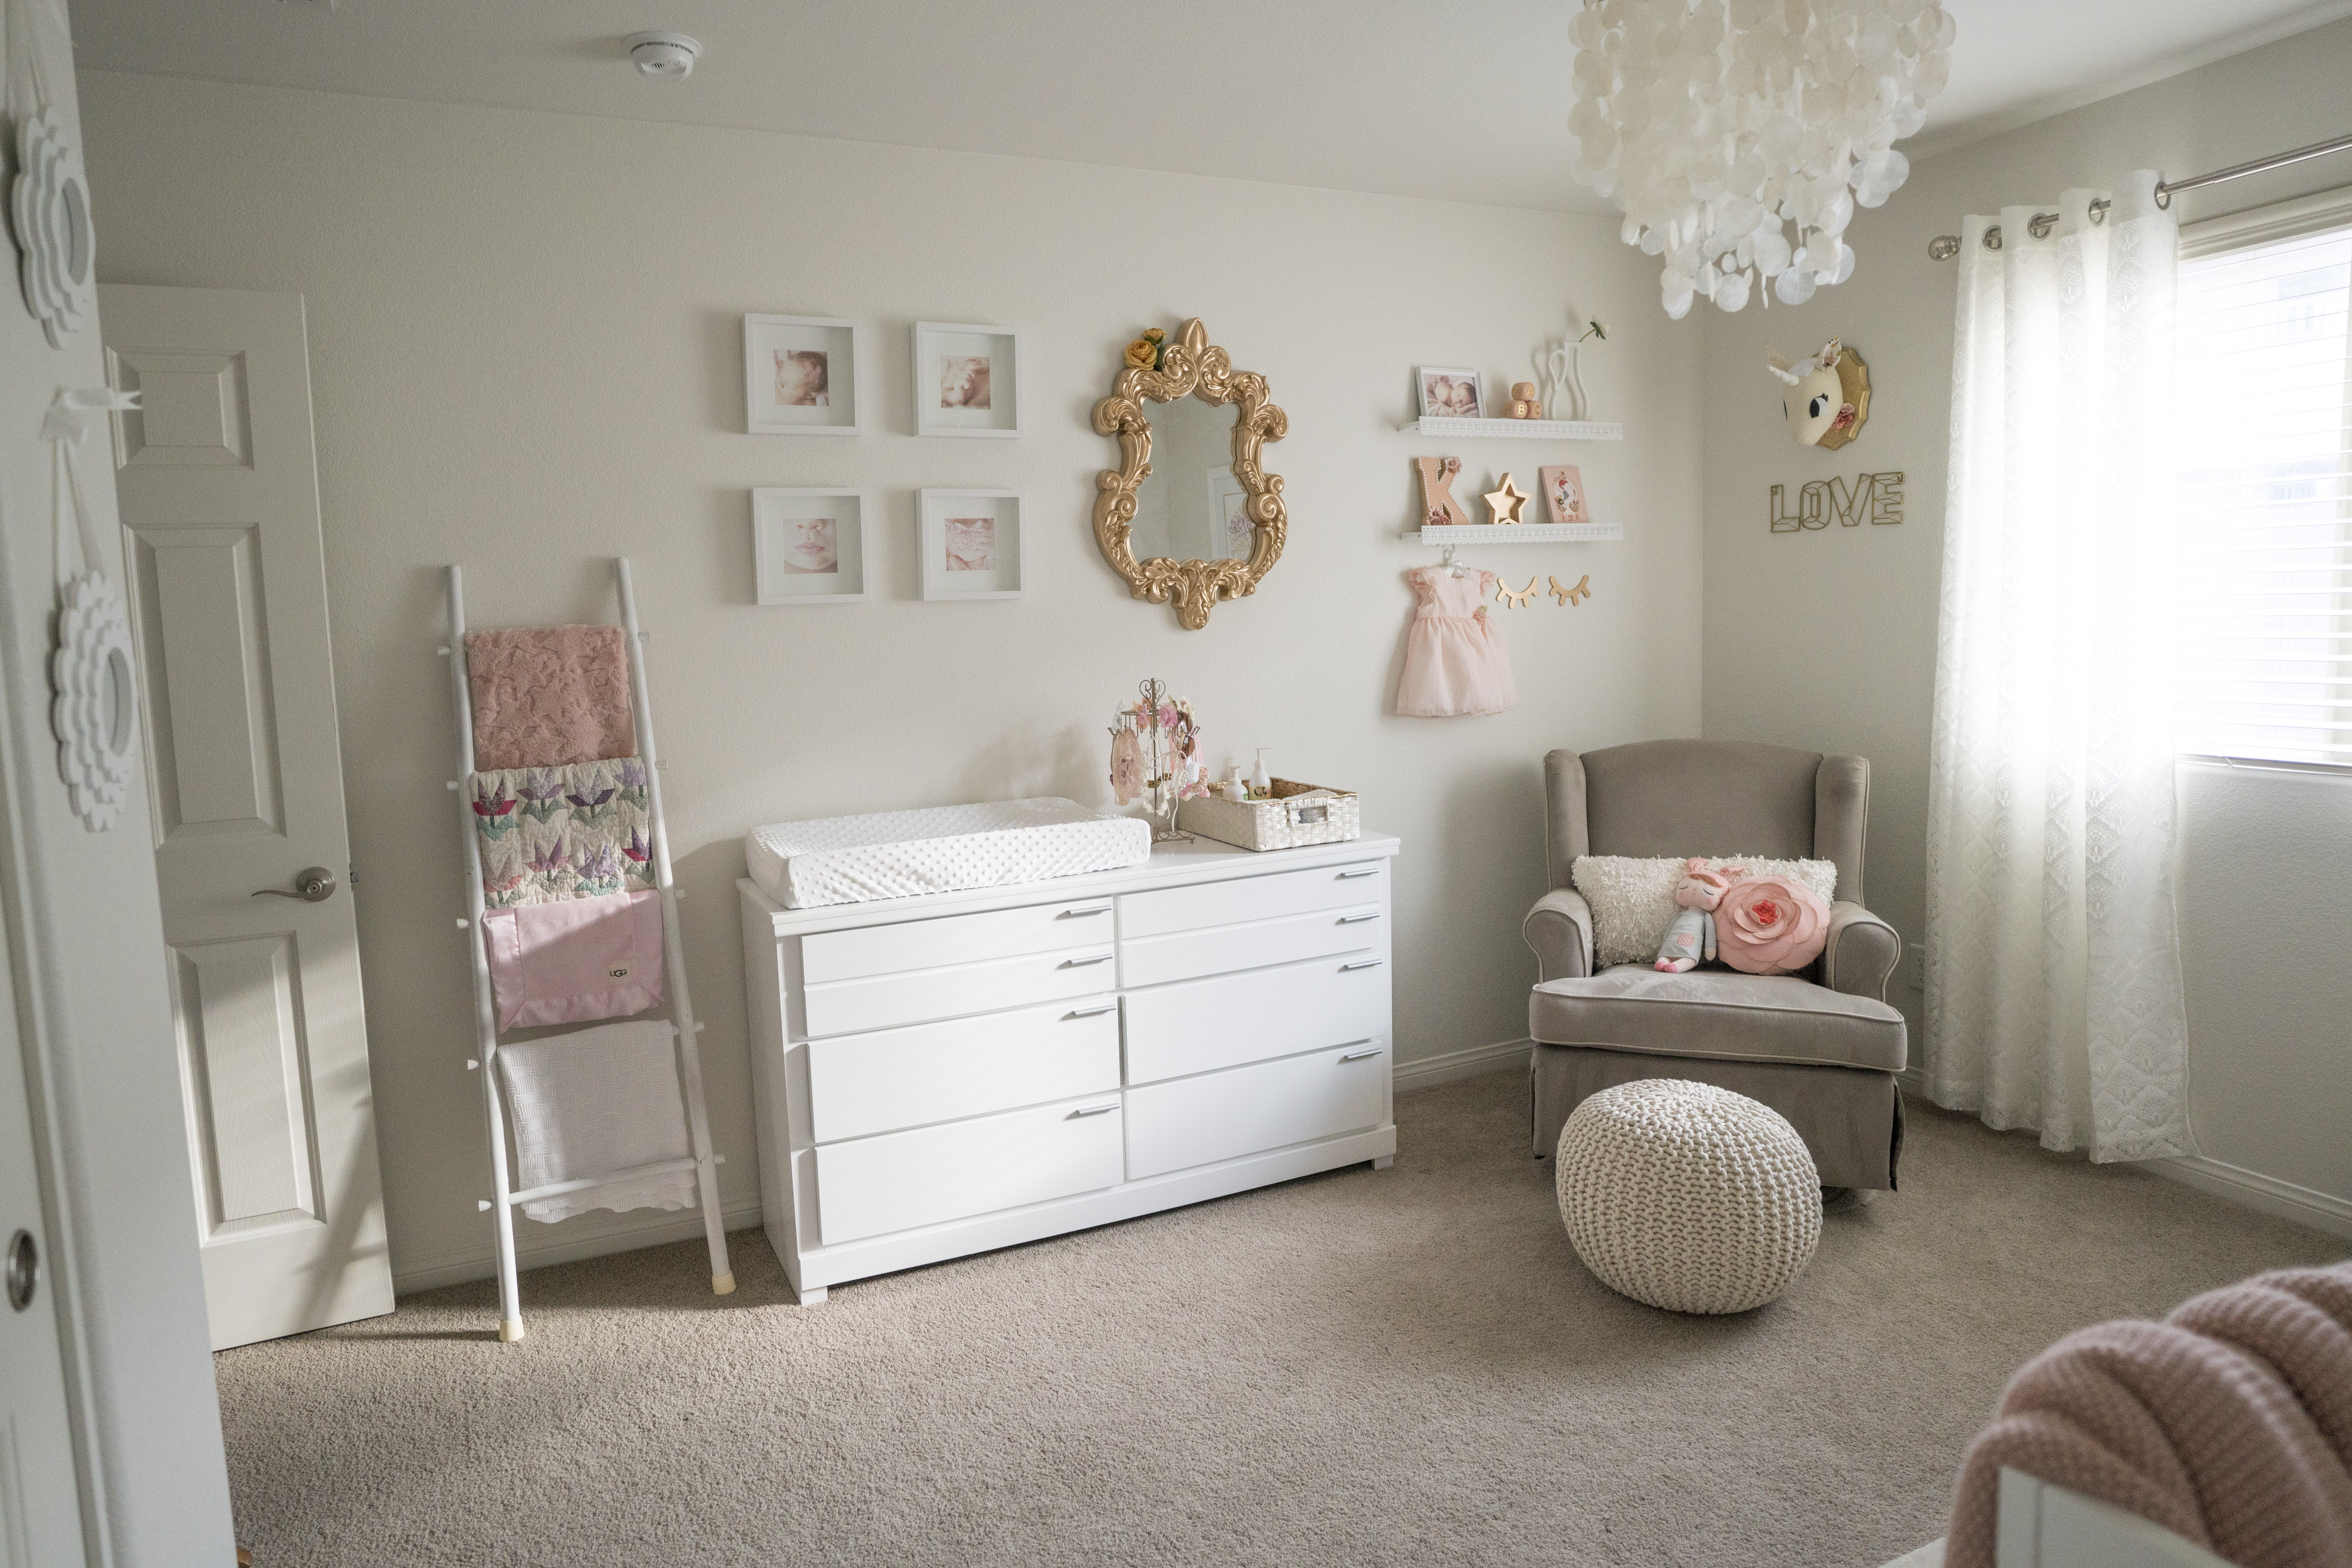 Real Nursery Styl | Katje's Room - A Modern and Elegant Pink Nursery | www.nestlingcollective.com